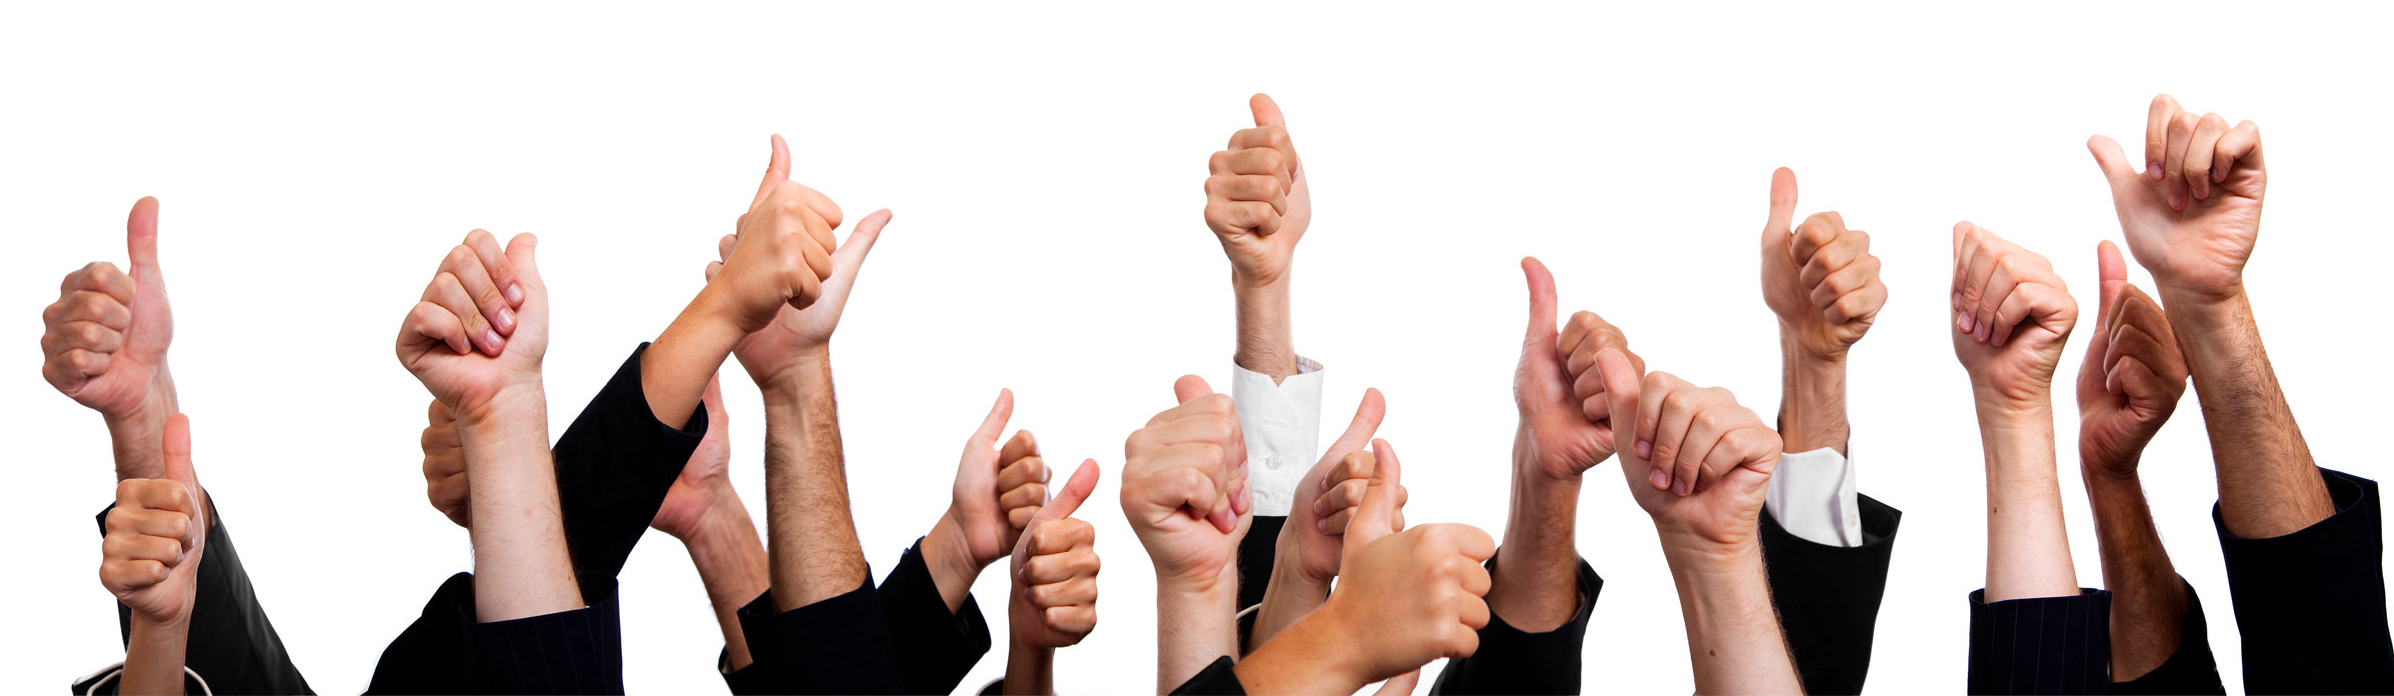 Thumbs up for great testimonials